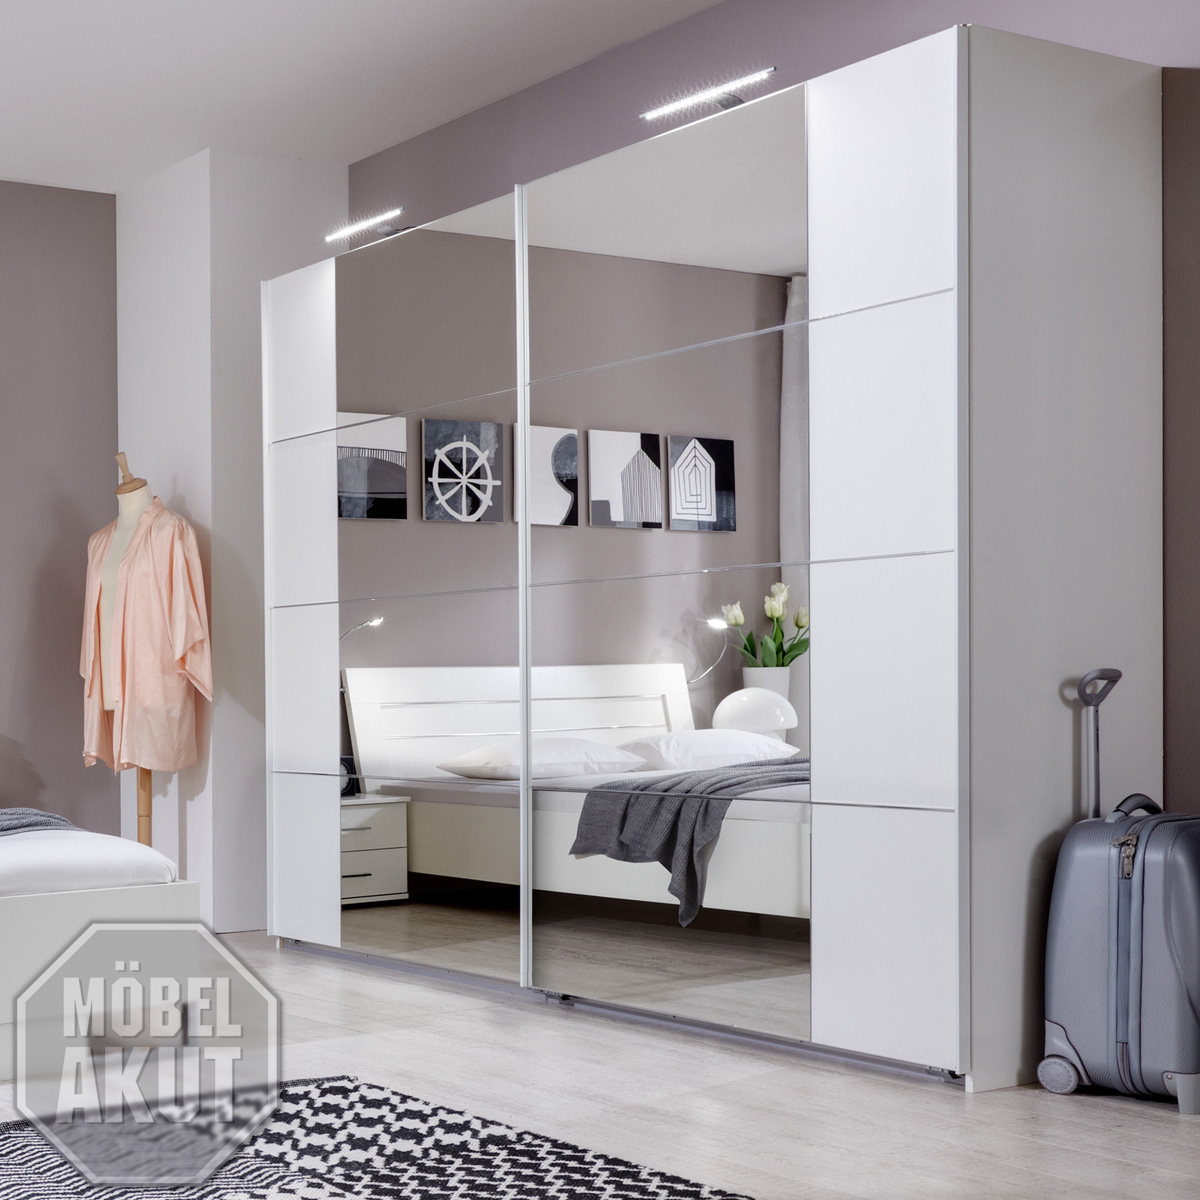 schwebet renschrank davos kleiderschrank in wei mit spiegel breite 270cm eur 459 95 picclick de. Black Bedroom Furniture Sets. Home Design Ideas